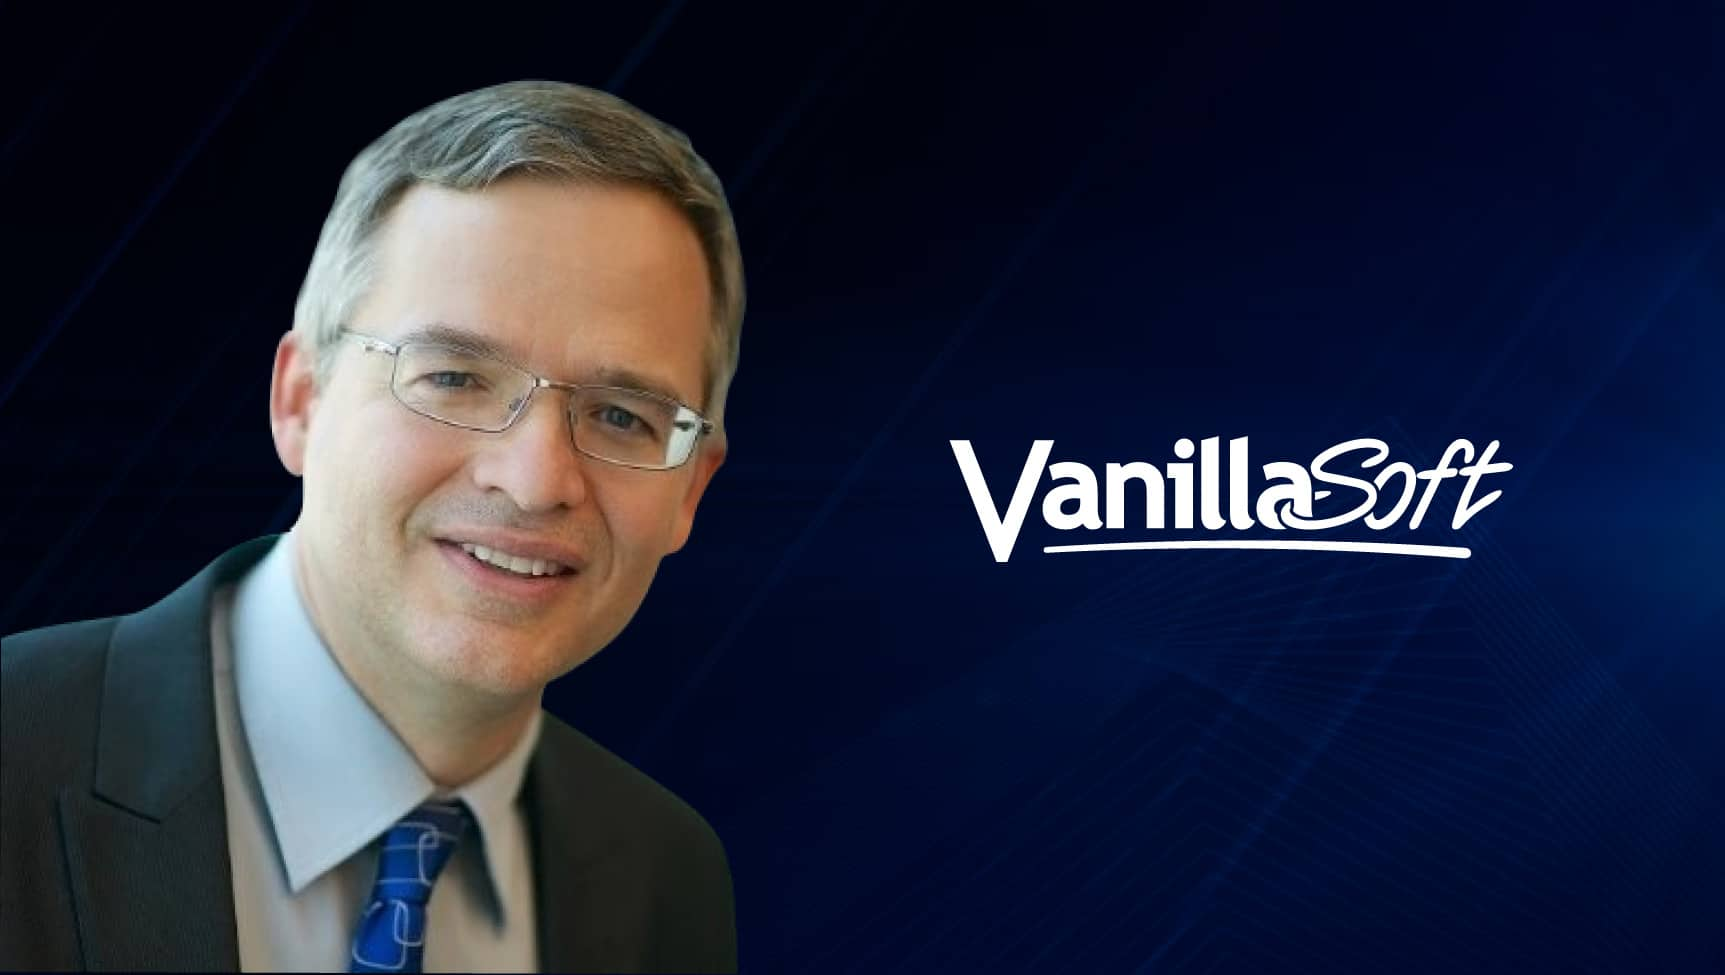 Image for SalesTech Interview With David Hood, President & CEO At VanillaSoft